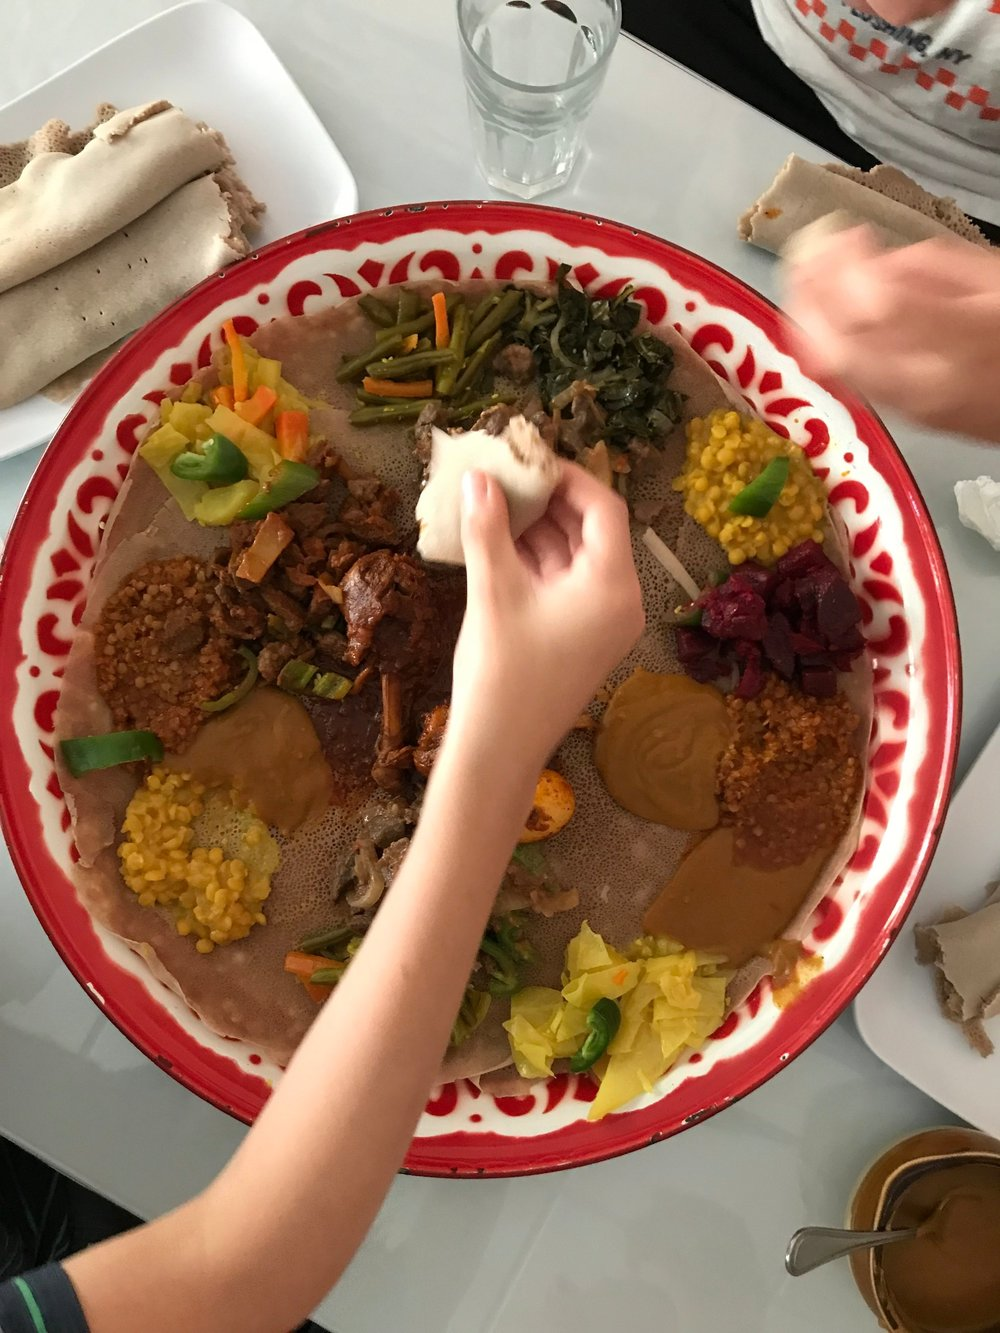 We went to Abyssinia, an Ethiopian restaurant in Harlem, on our first day of Adventure Camp last year.